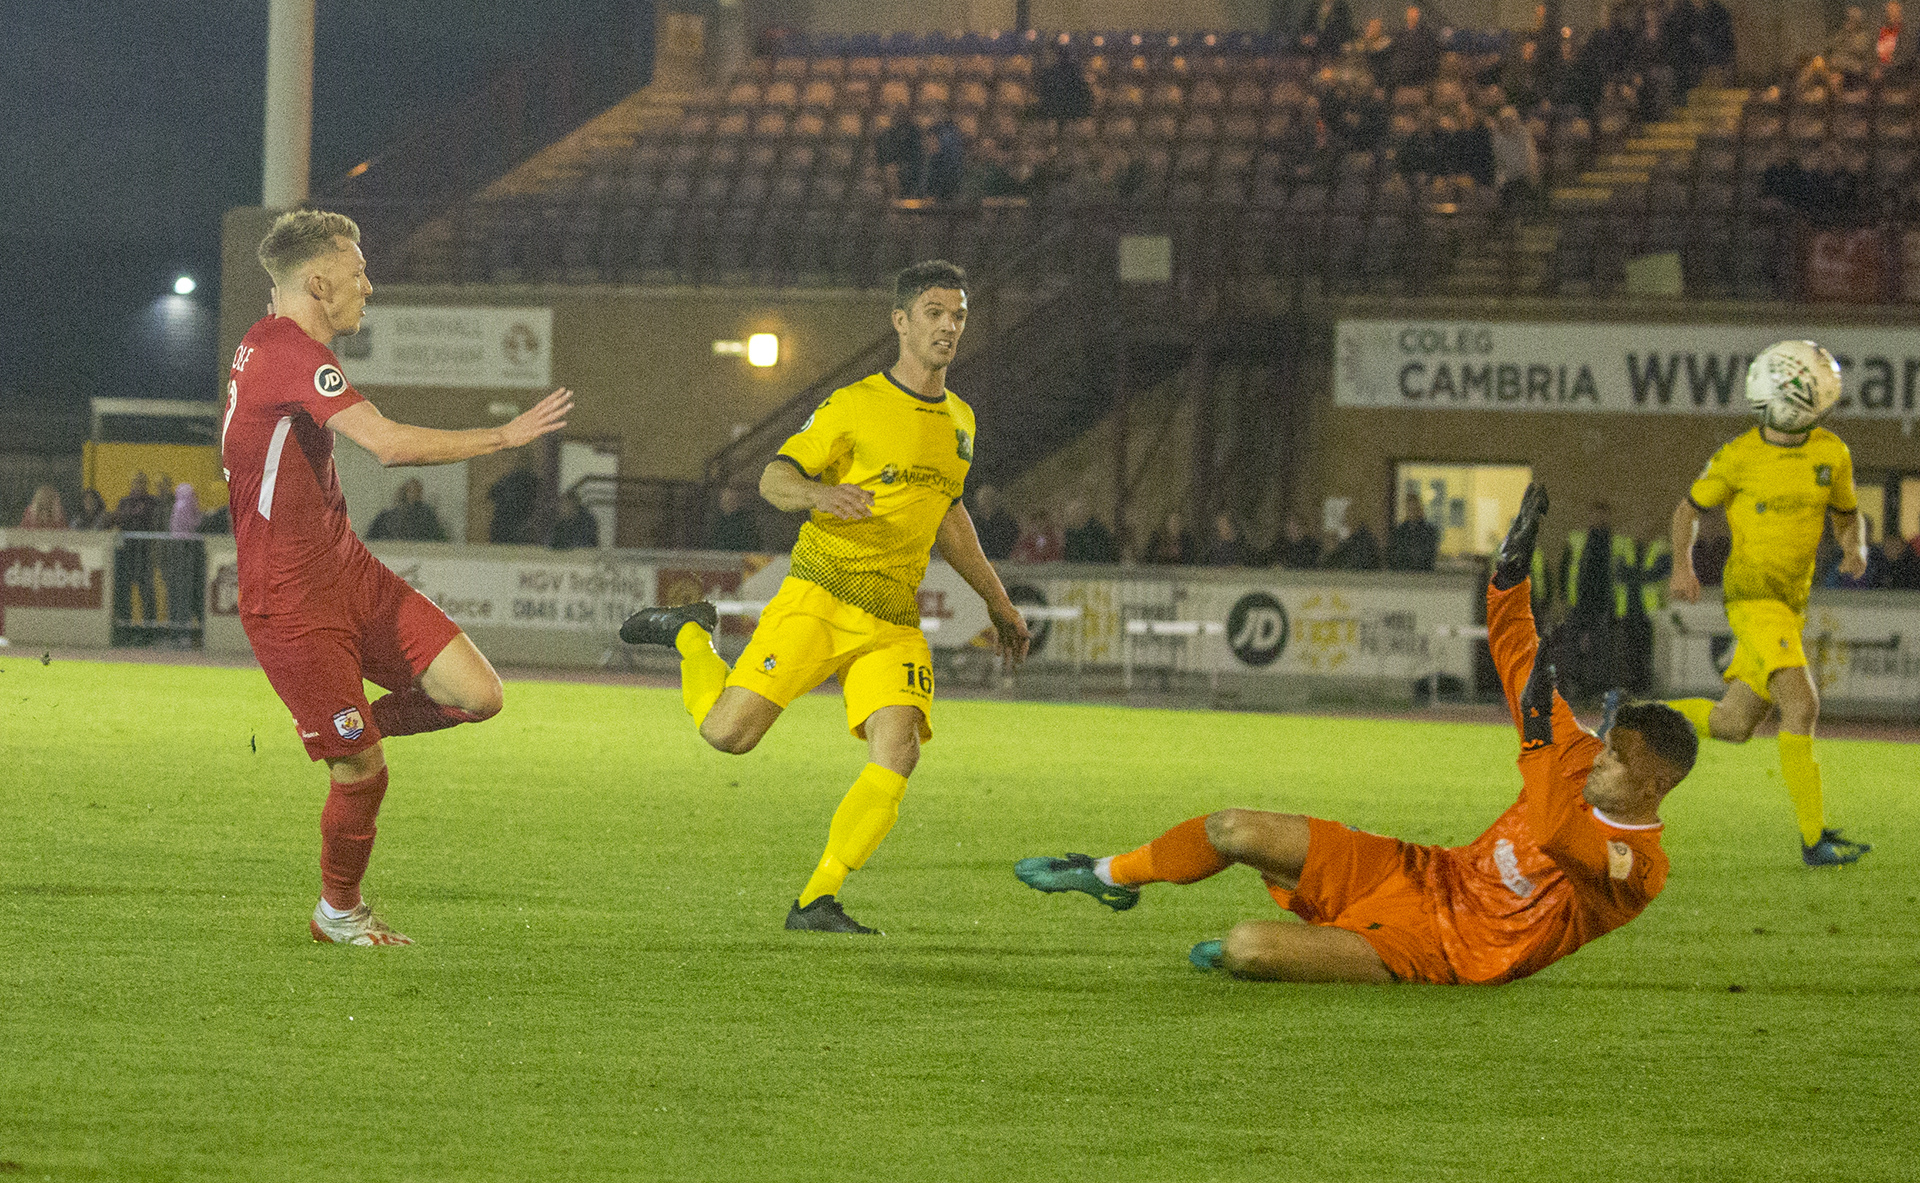 Declan Poole lifts the ball over the onrushing Connor Roberts | © NCM Media